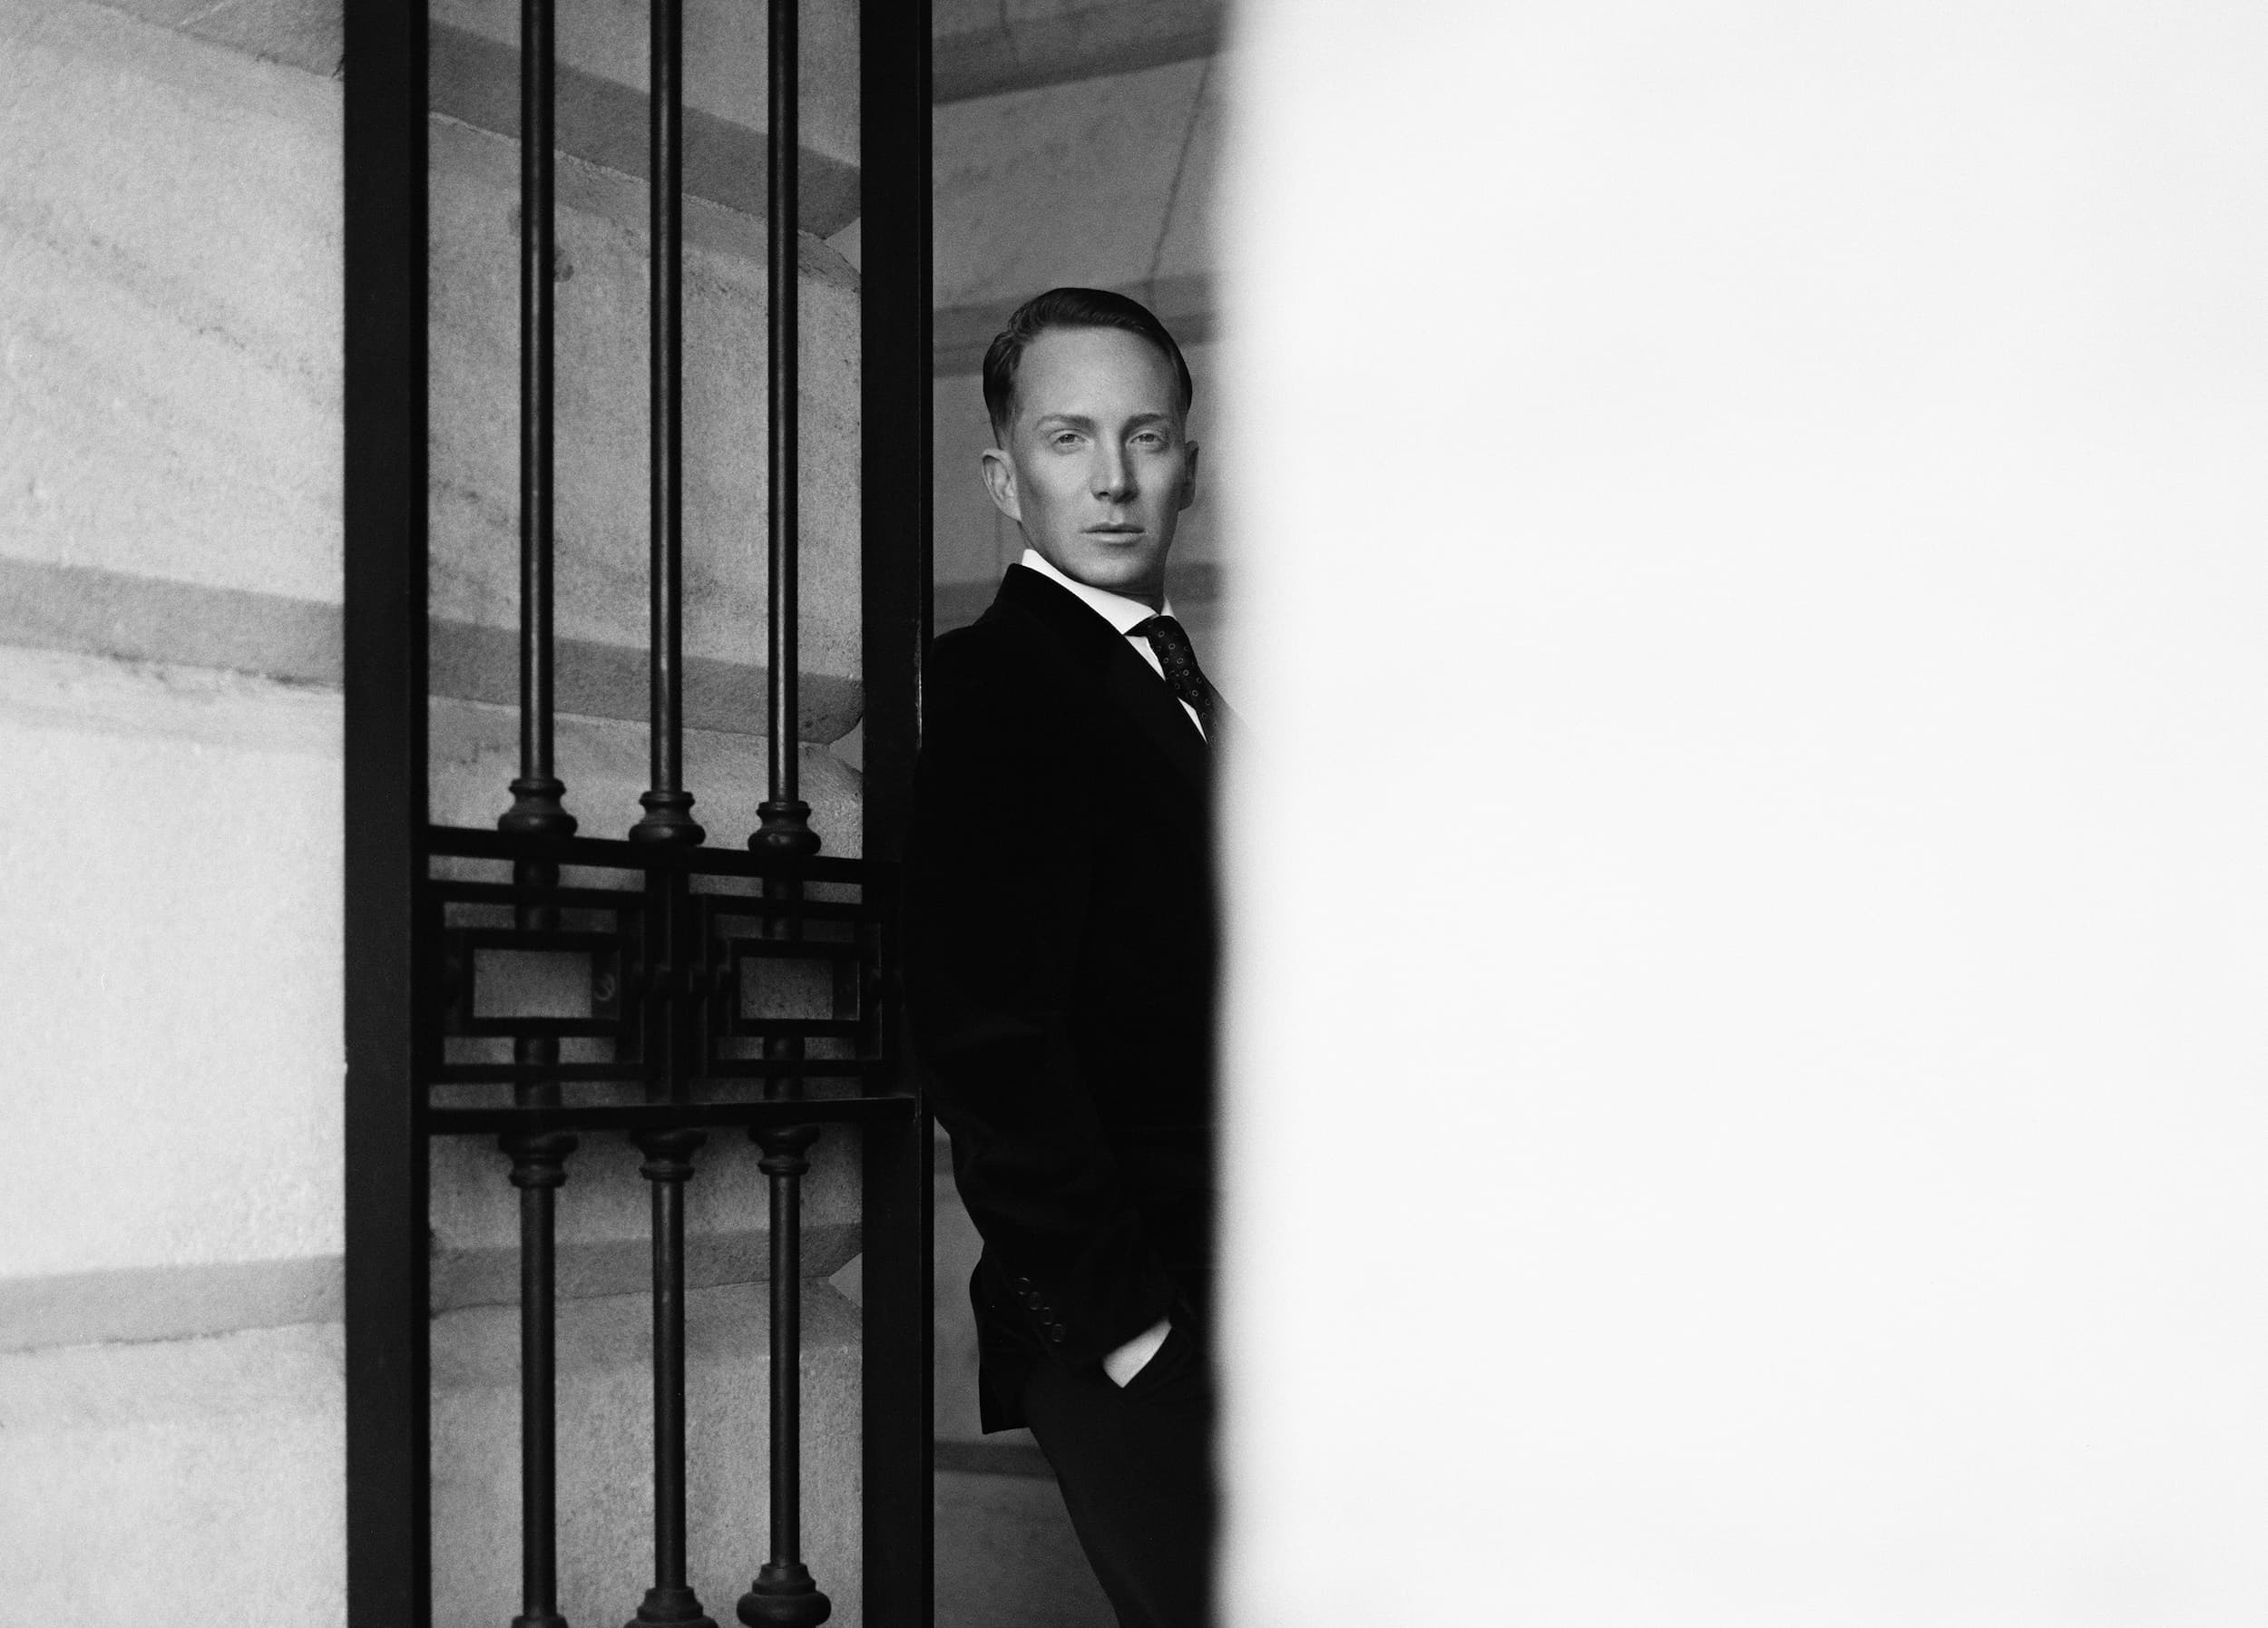 Partially obscured black and white portrait of Paul Corrie leaning on an iron gate.